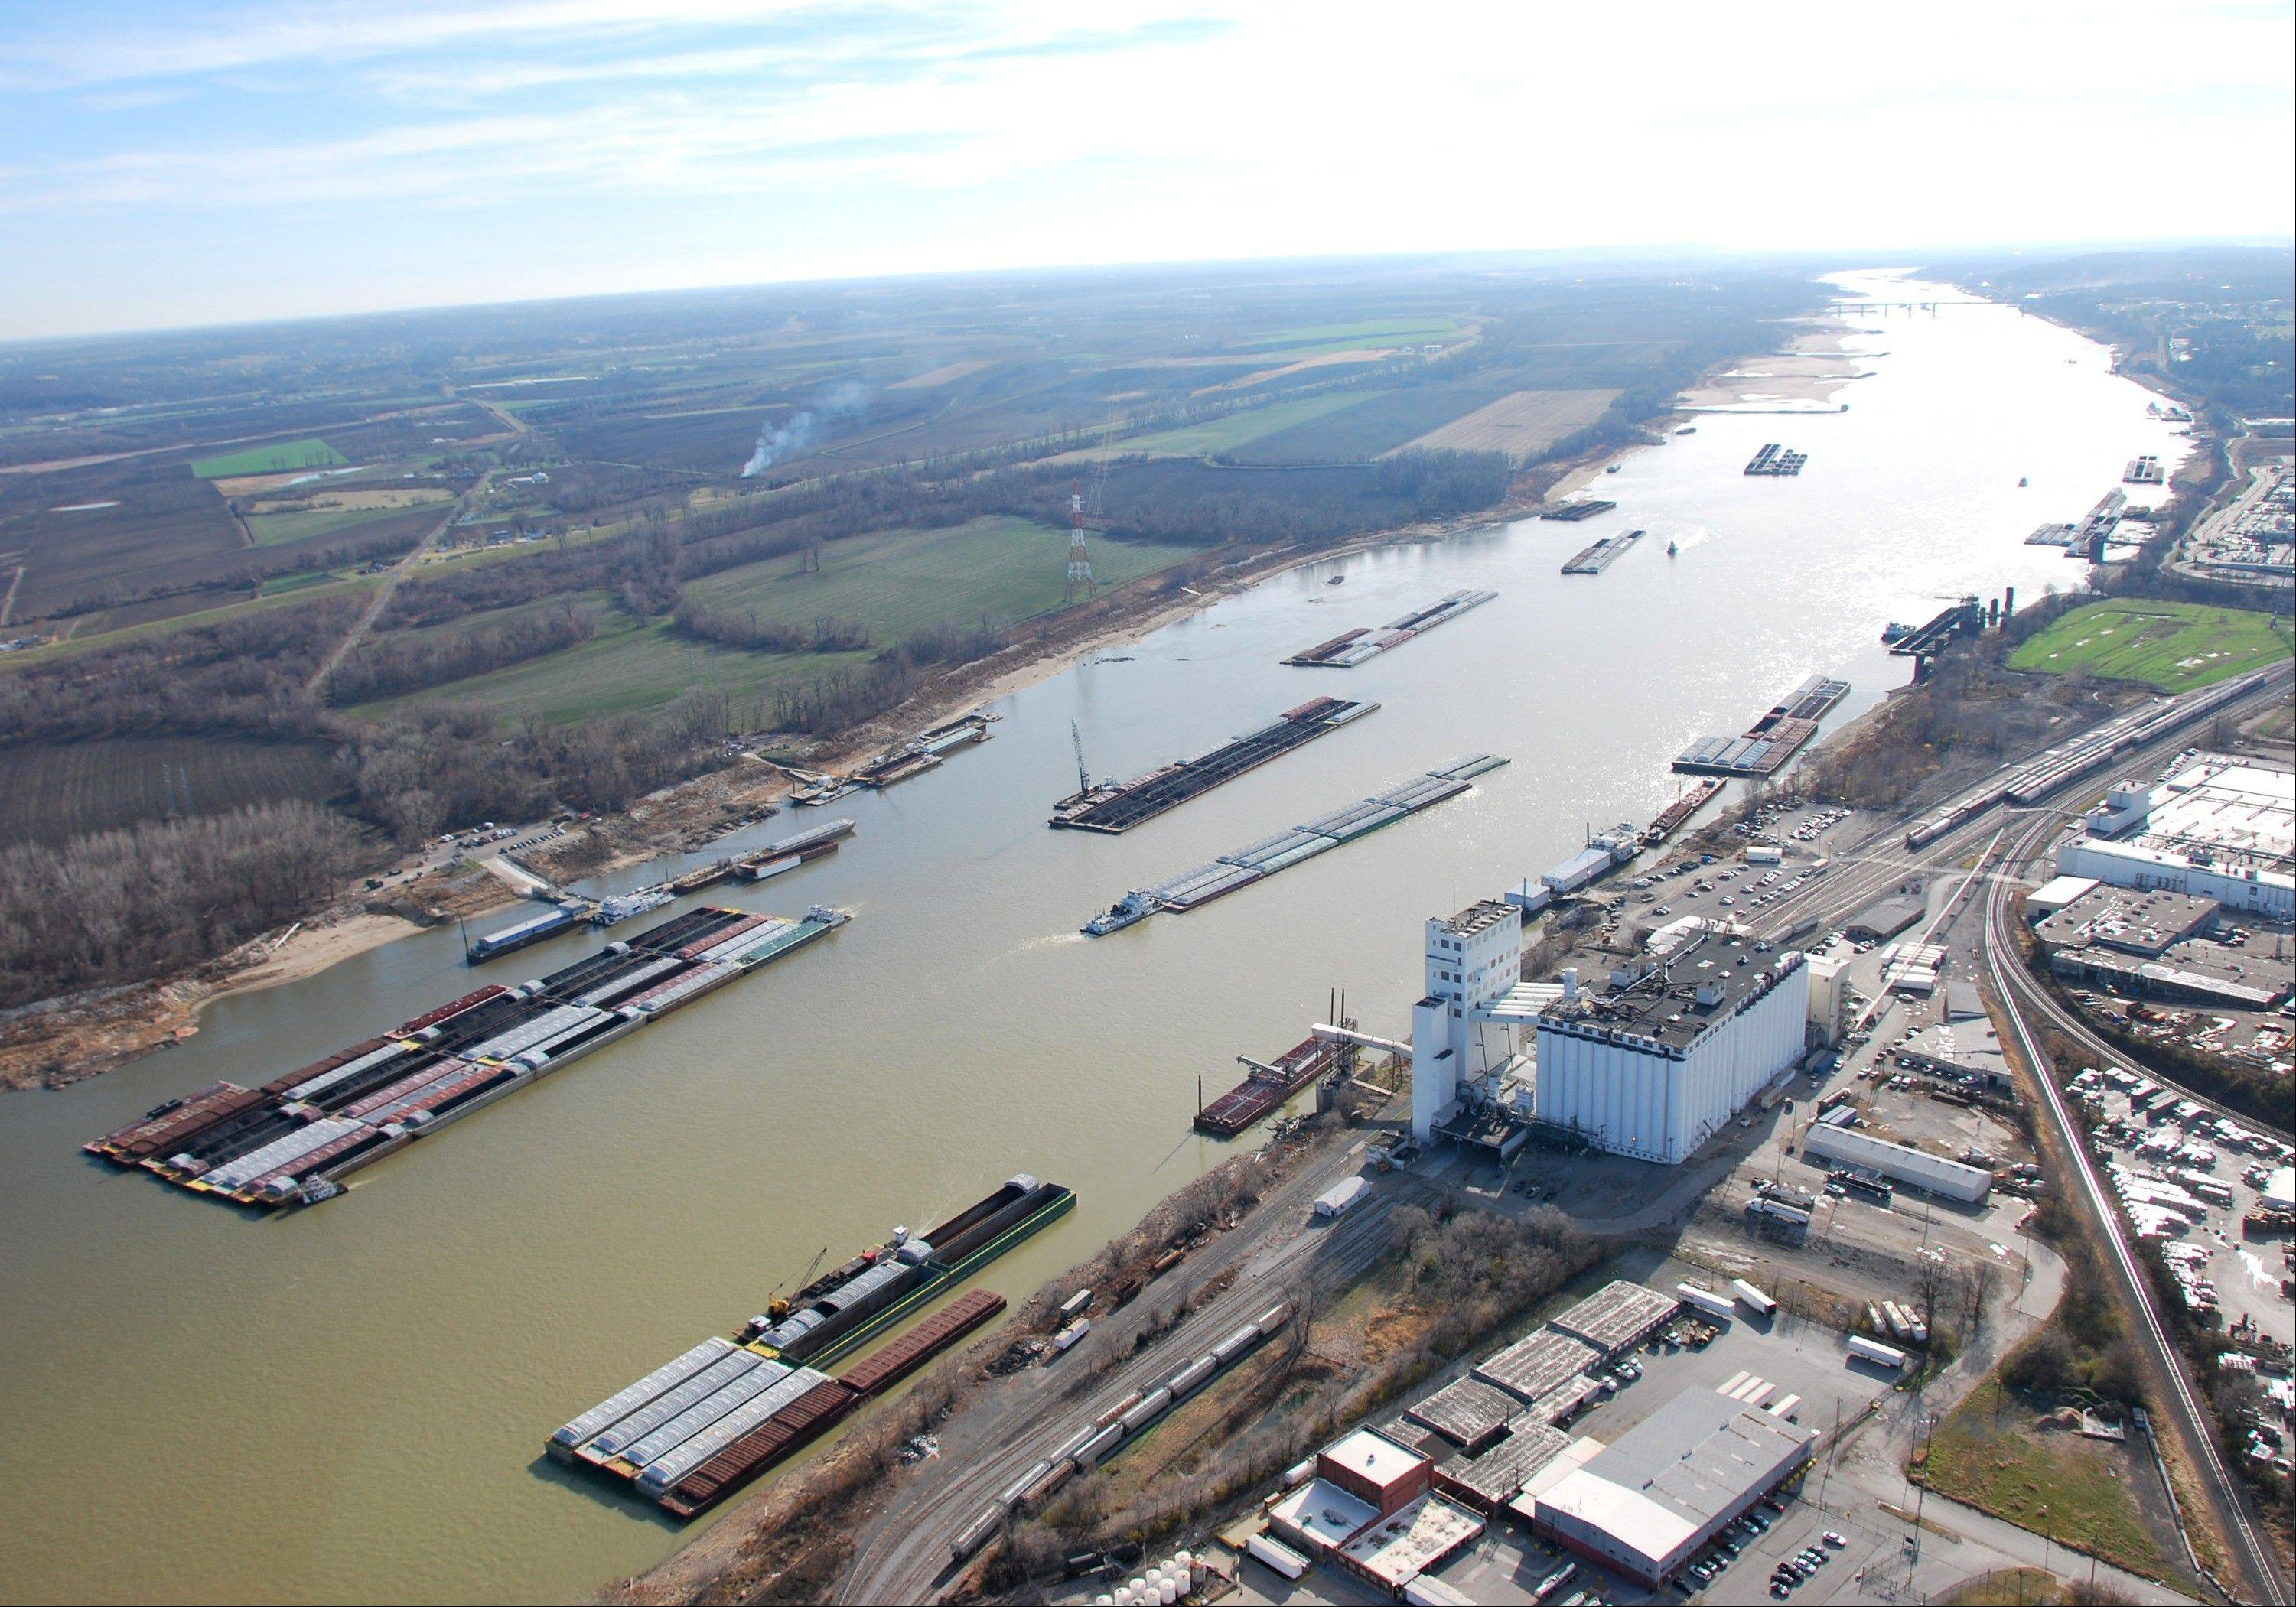 Bbarges pass in tight quarters due to low water levels as they navigate the Mississippi River Wednesday near St. Louis.